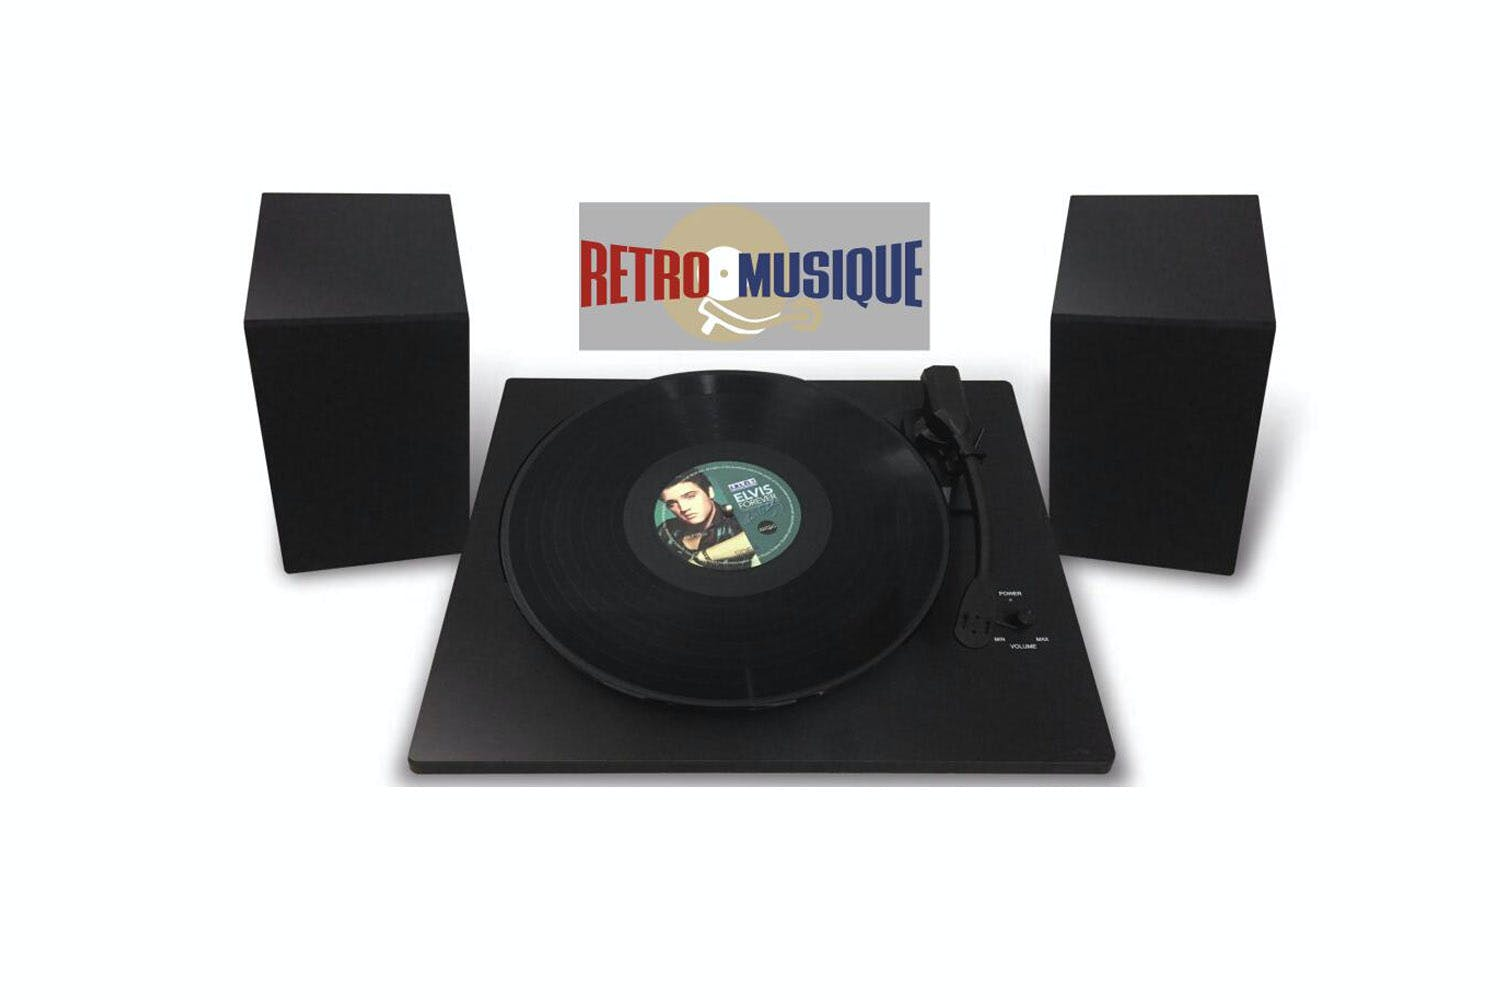 Retro Musique Vinyl Record Player Starter Kit